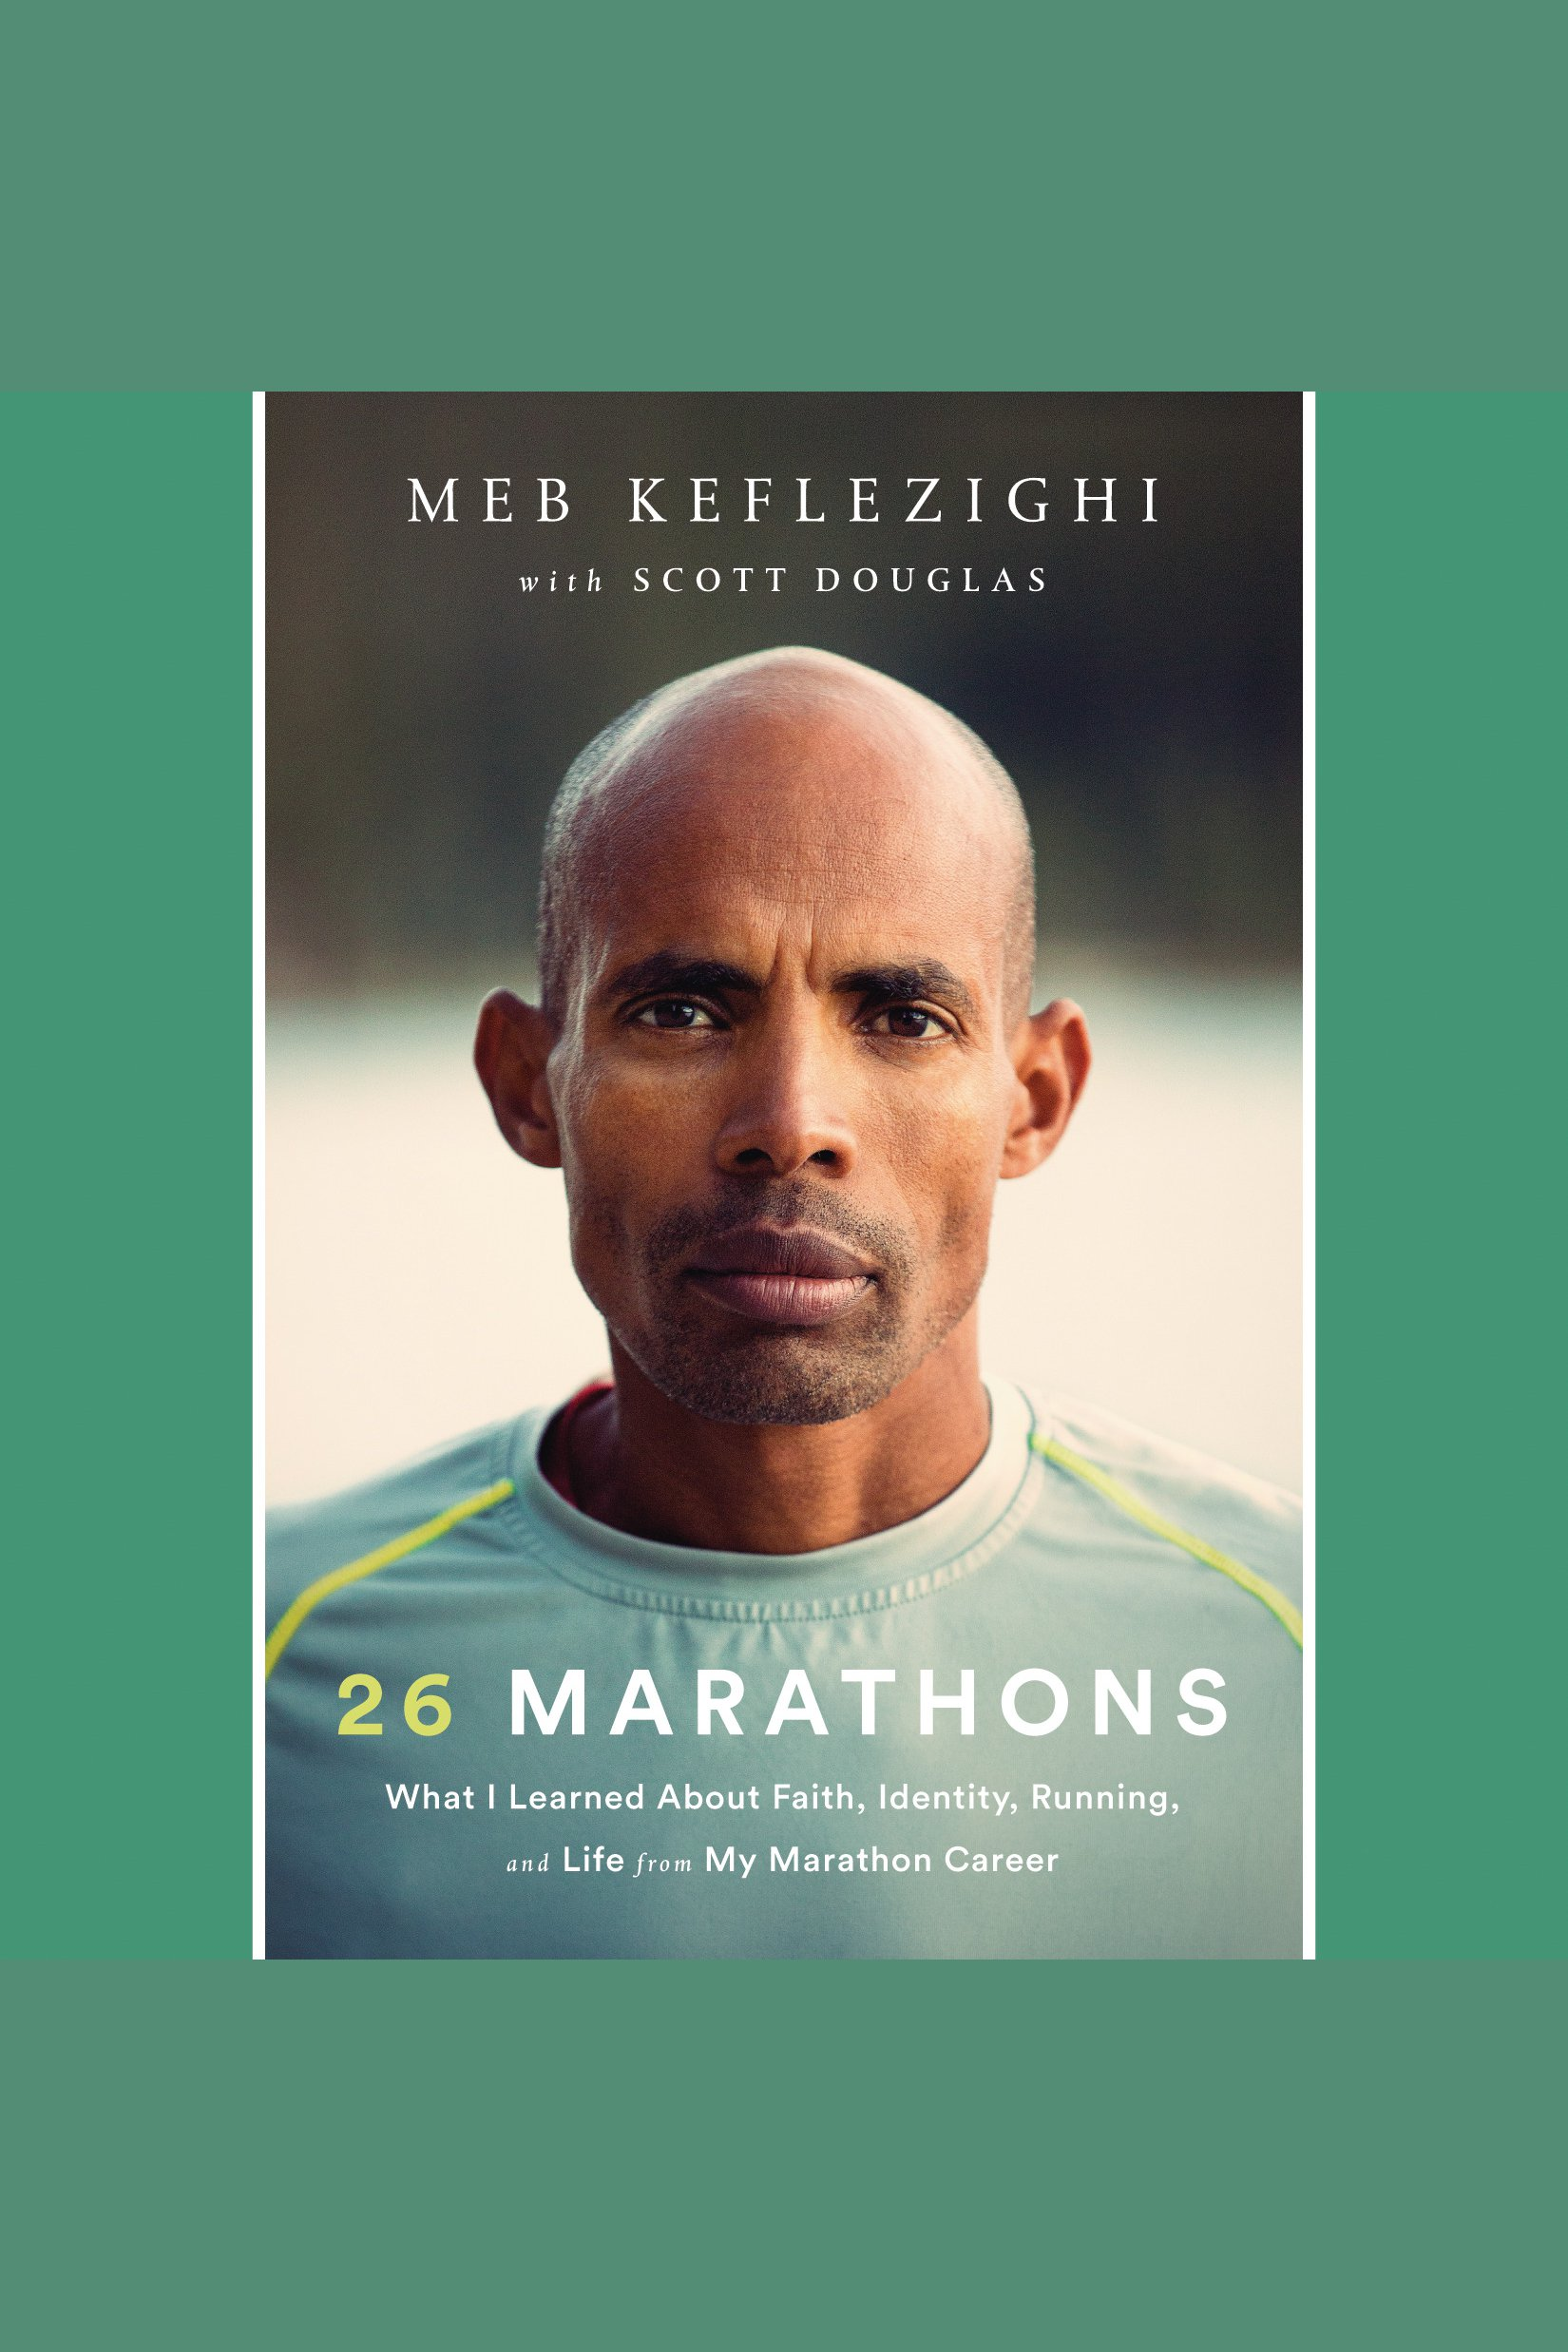 26 Marathons What I Learned About Faith, Identity, Running, and Life from My Marathon Career